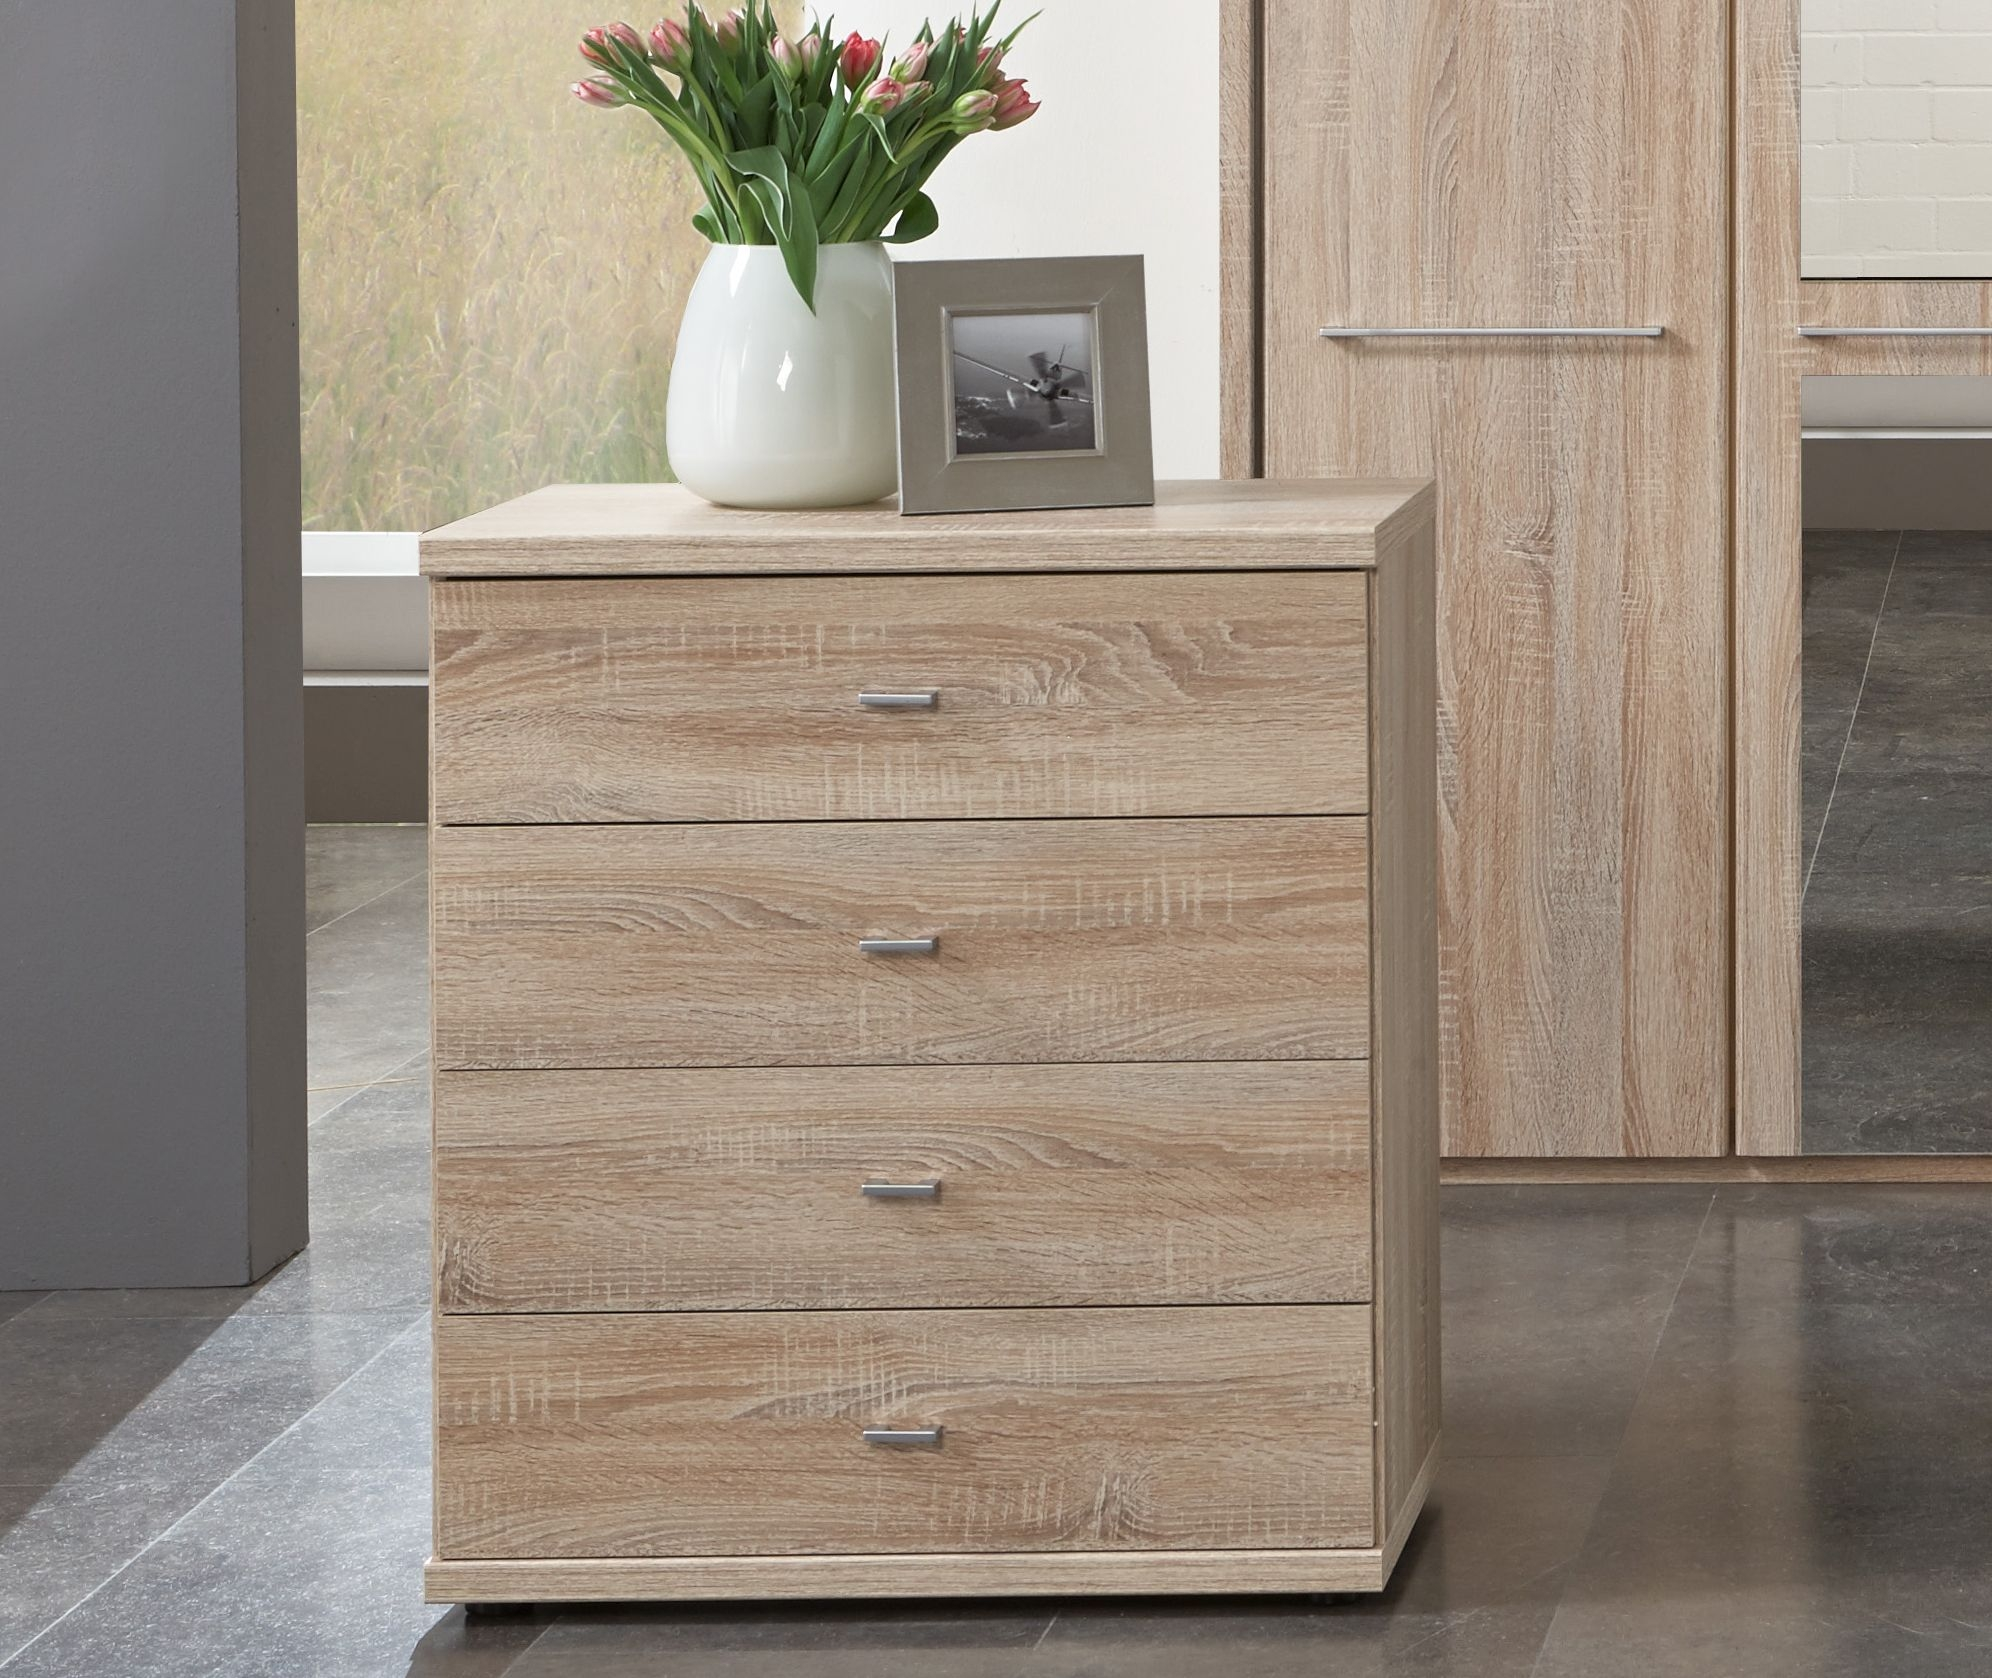 Wiemann Dakar-2 3 Drawer Large Chest in Rustic Oak